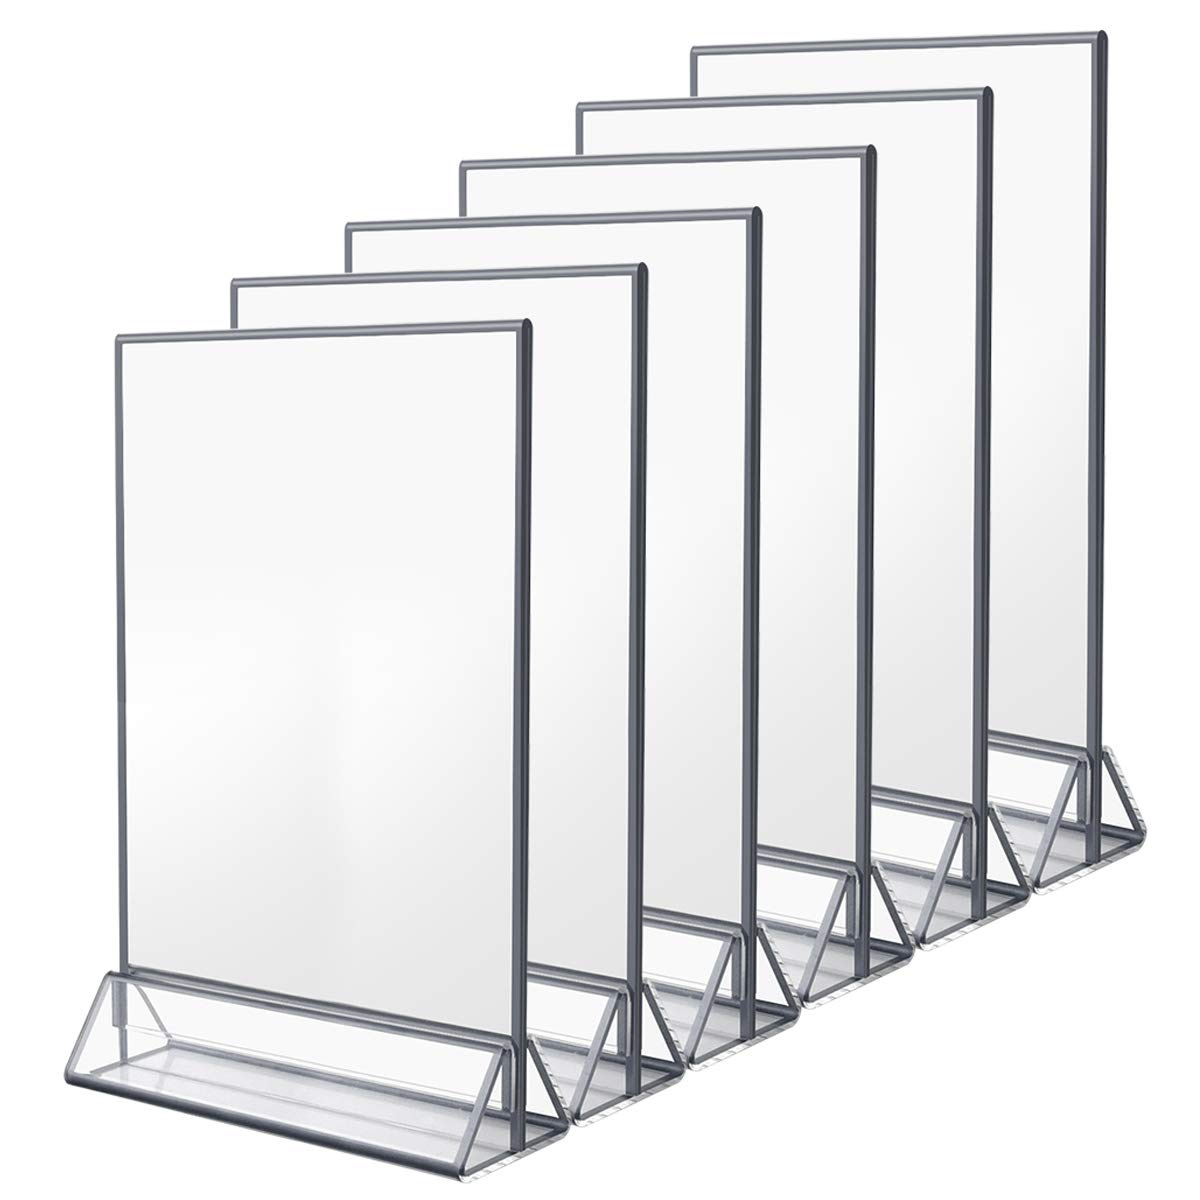 NIUBEE 6Pack 8.5x11 Clear Acrylic Sign Holder with Sliver Borders and Vertical Stand, Double Sided Table Menu Holders Picture Frames for Wedding Table Numbers, Restaurant Signs, Photos and Art Display